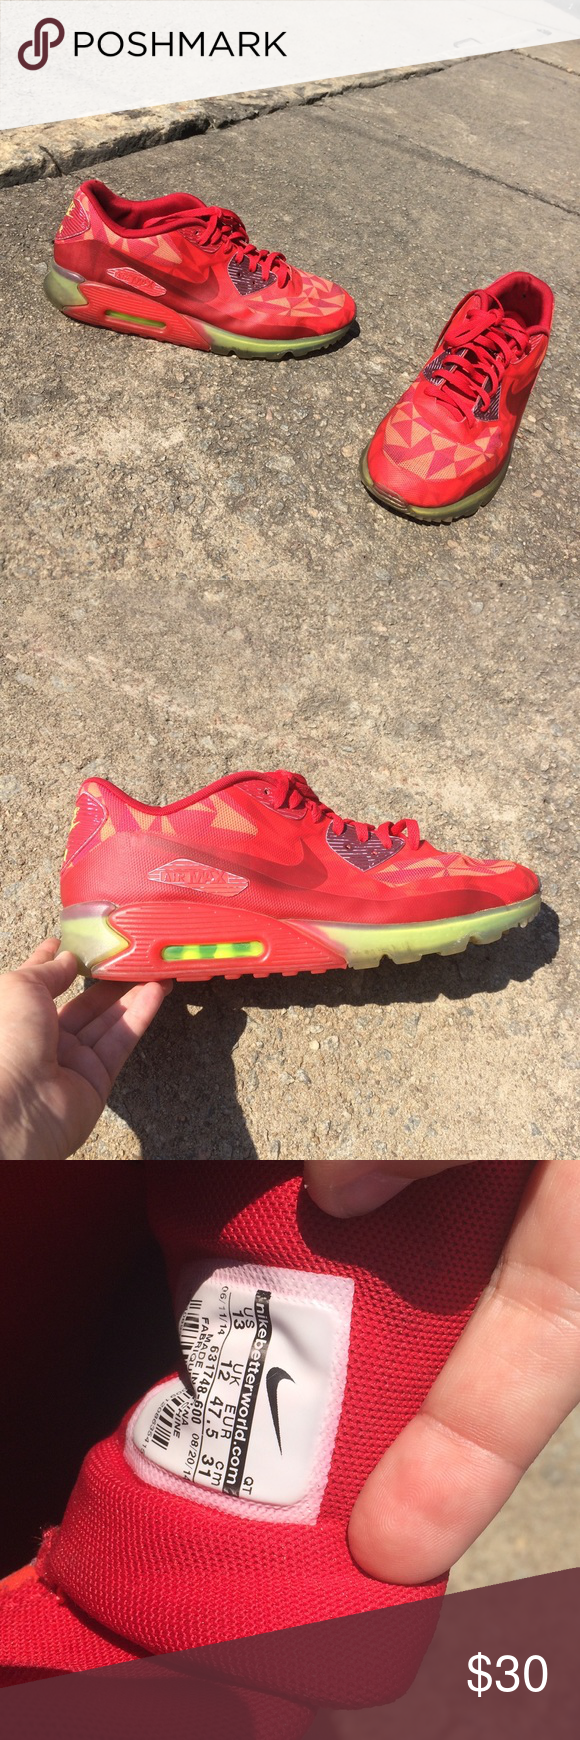 fbe9e4e777 ... czech nike air max 90 red geometric neon gum sole 13 preloved but in  great condition